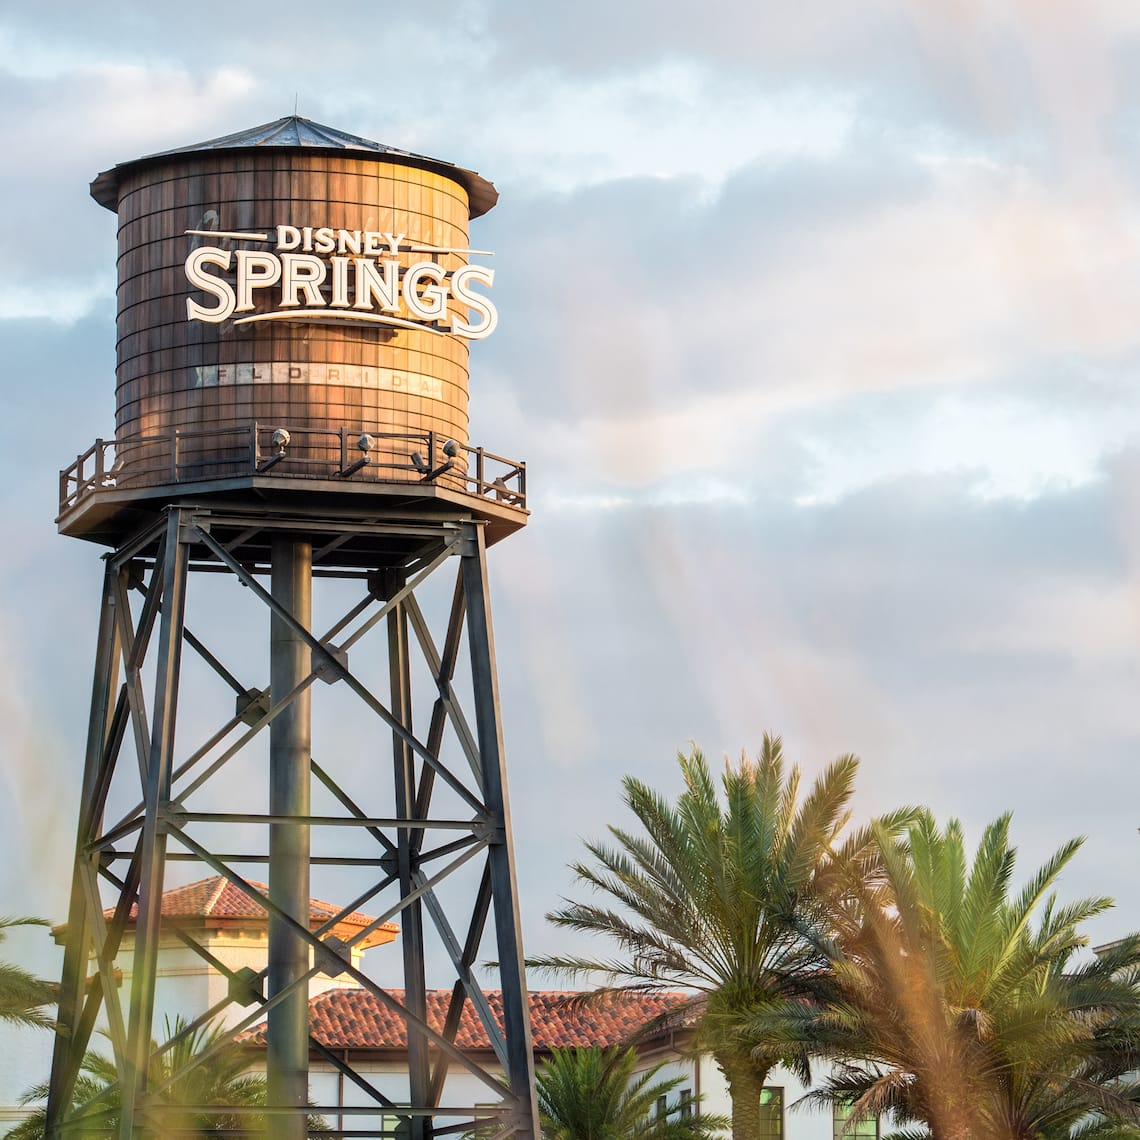 A water tower that reads Disney Springs is surrounded by buildings and palm trees